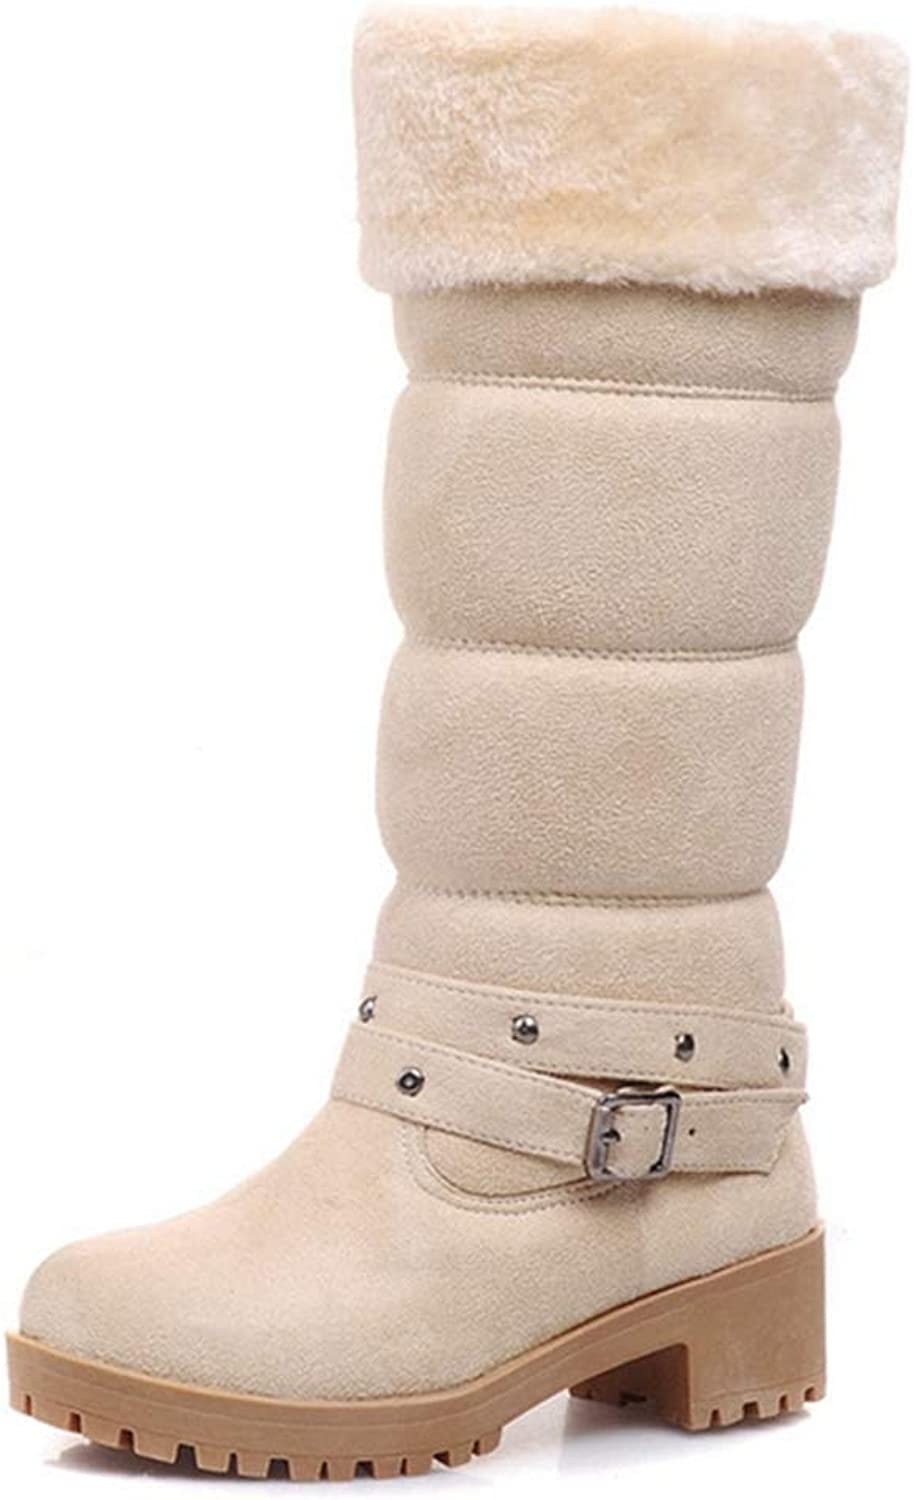 GIY Women's Mid-Calf Snow Boots Suede Leather Buckle Waterproof Fur Lined Low Heel Wedge Boots